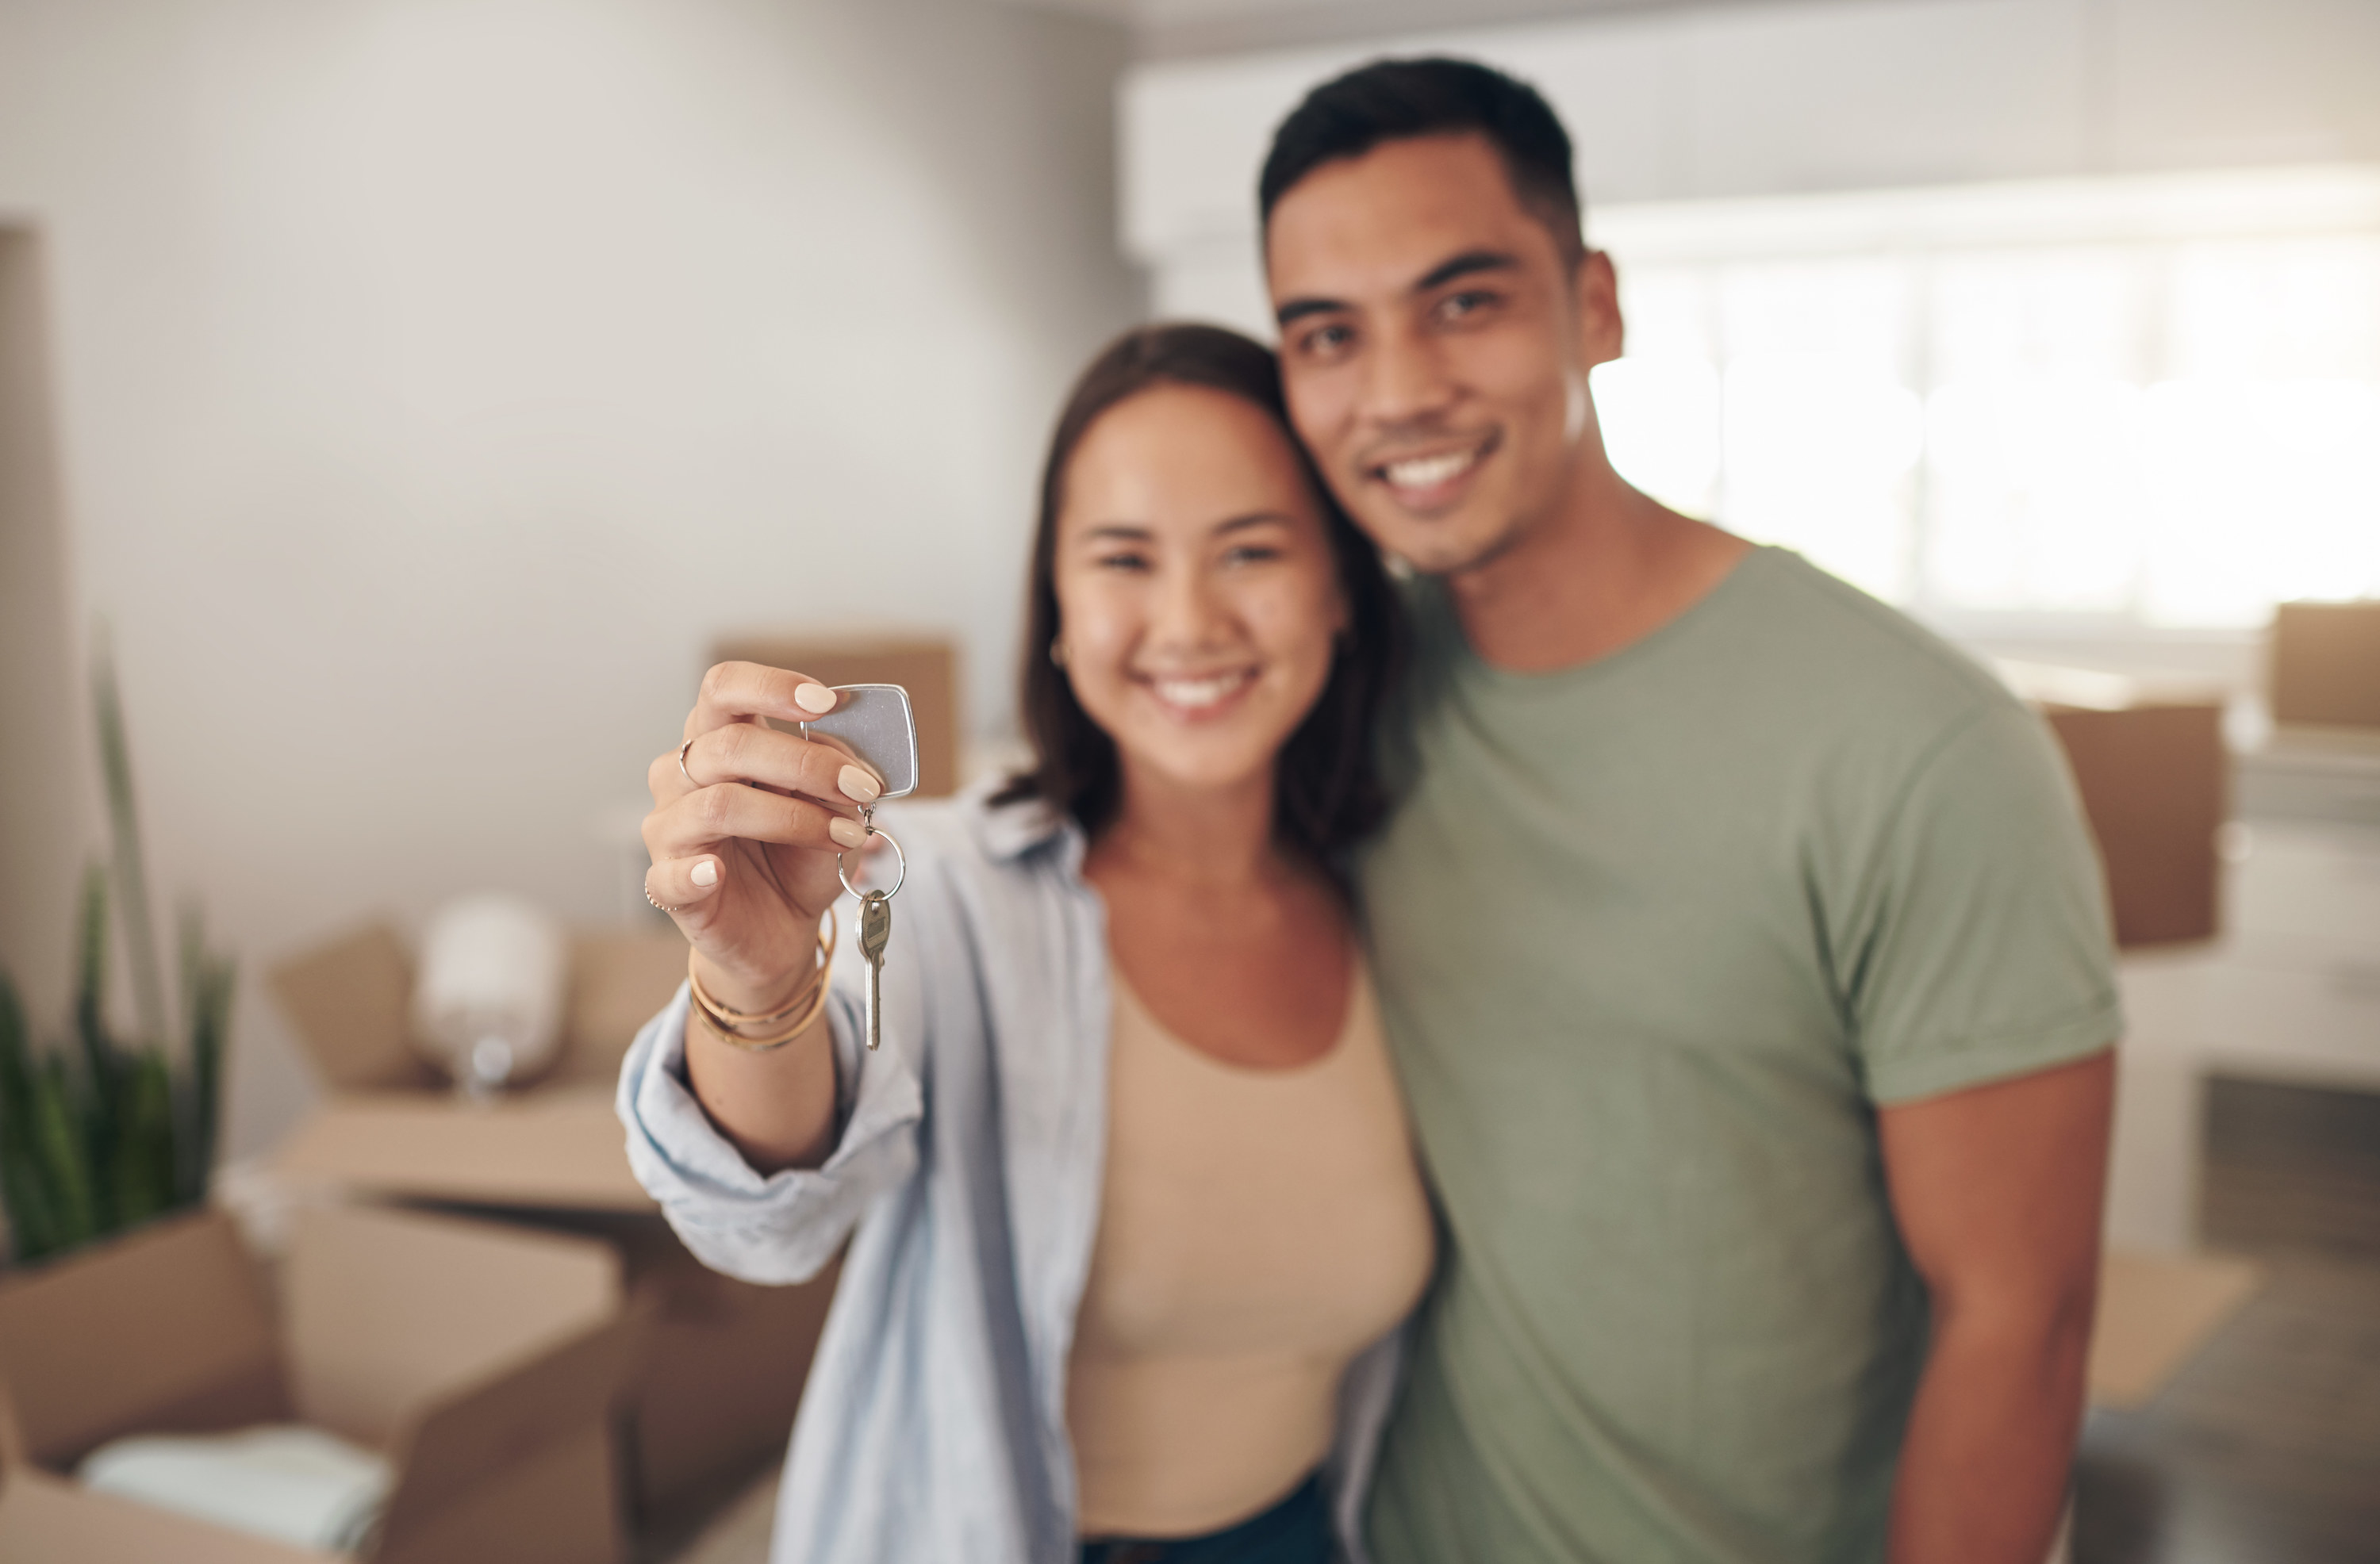 A couple holding up a key in their new home